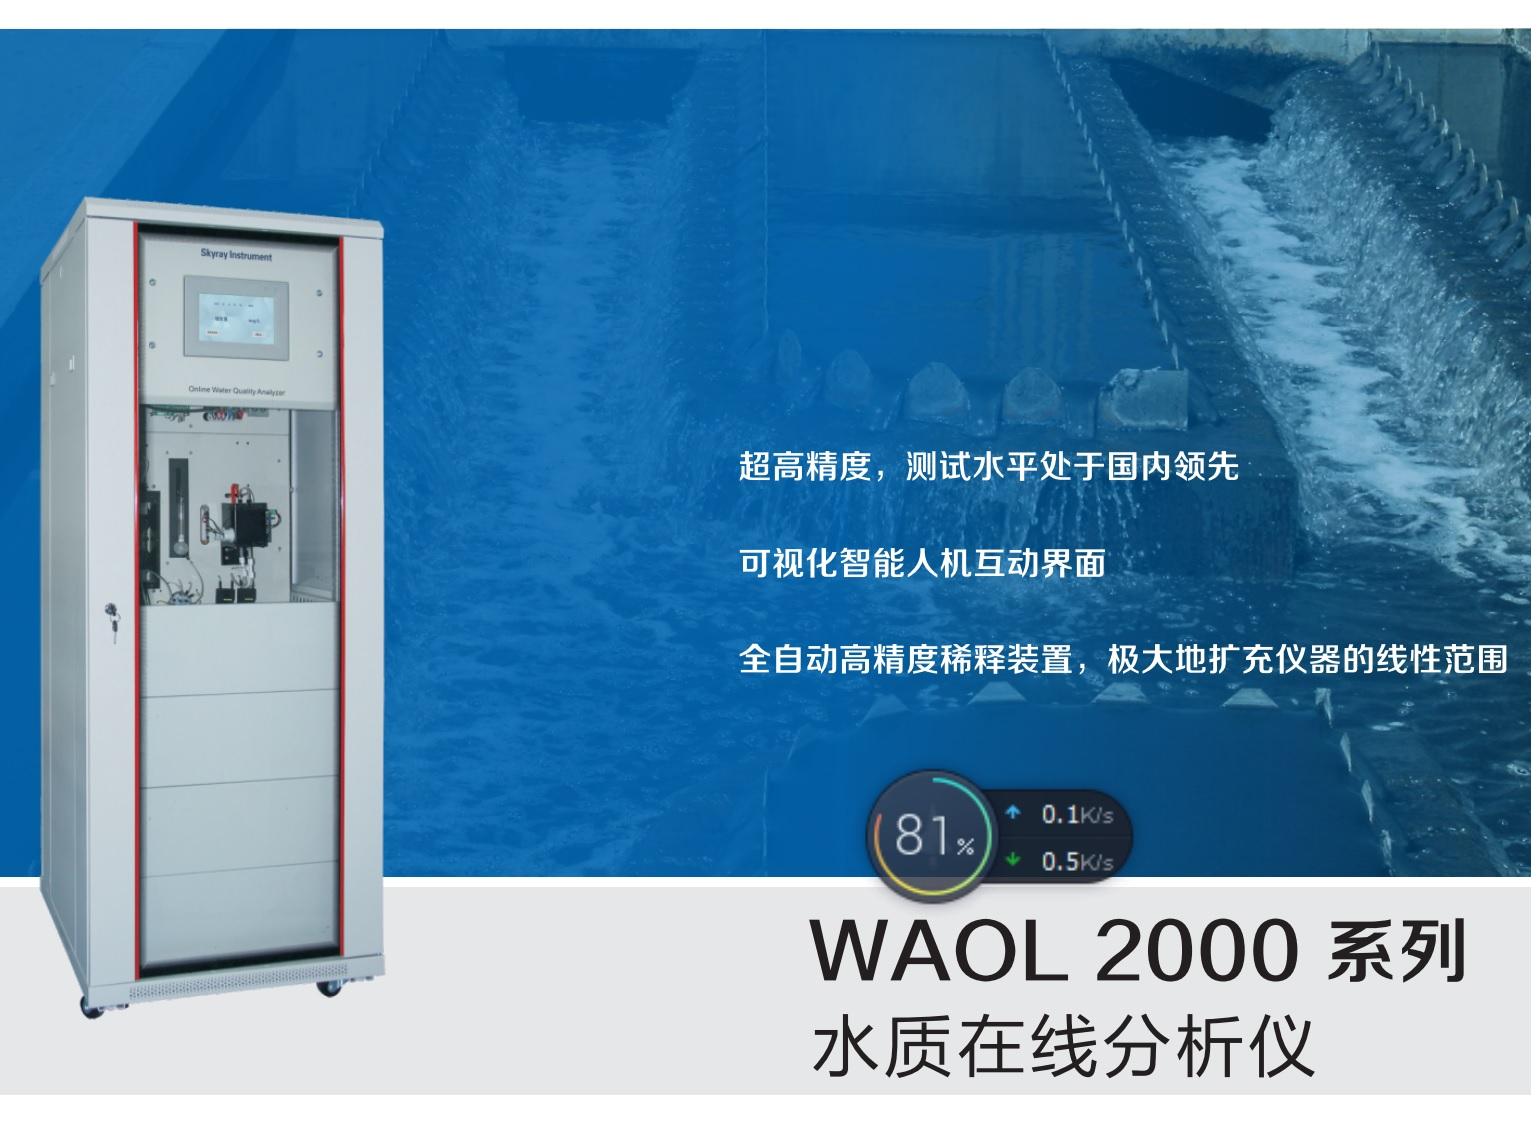 Jiangsu Skyray Instrument Co., Ltd.-WAOL 2000 On line analysis of water quality